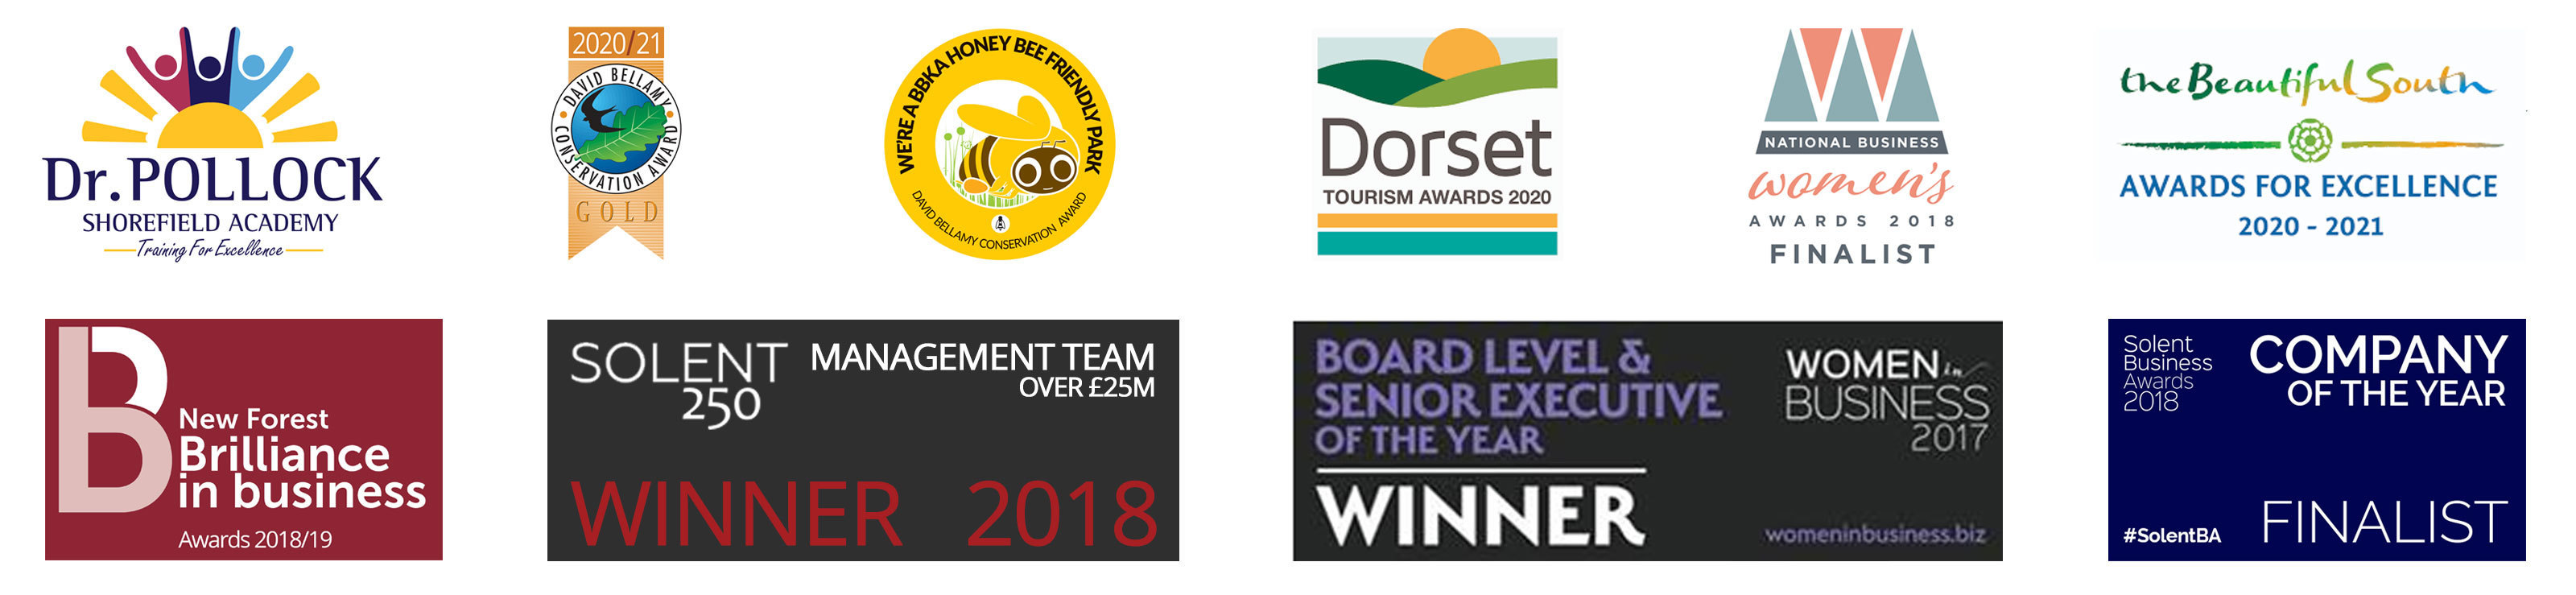 Awards logos attained by Shorefield Holidays